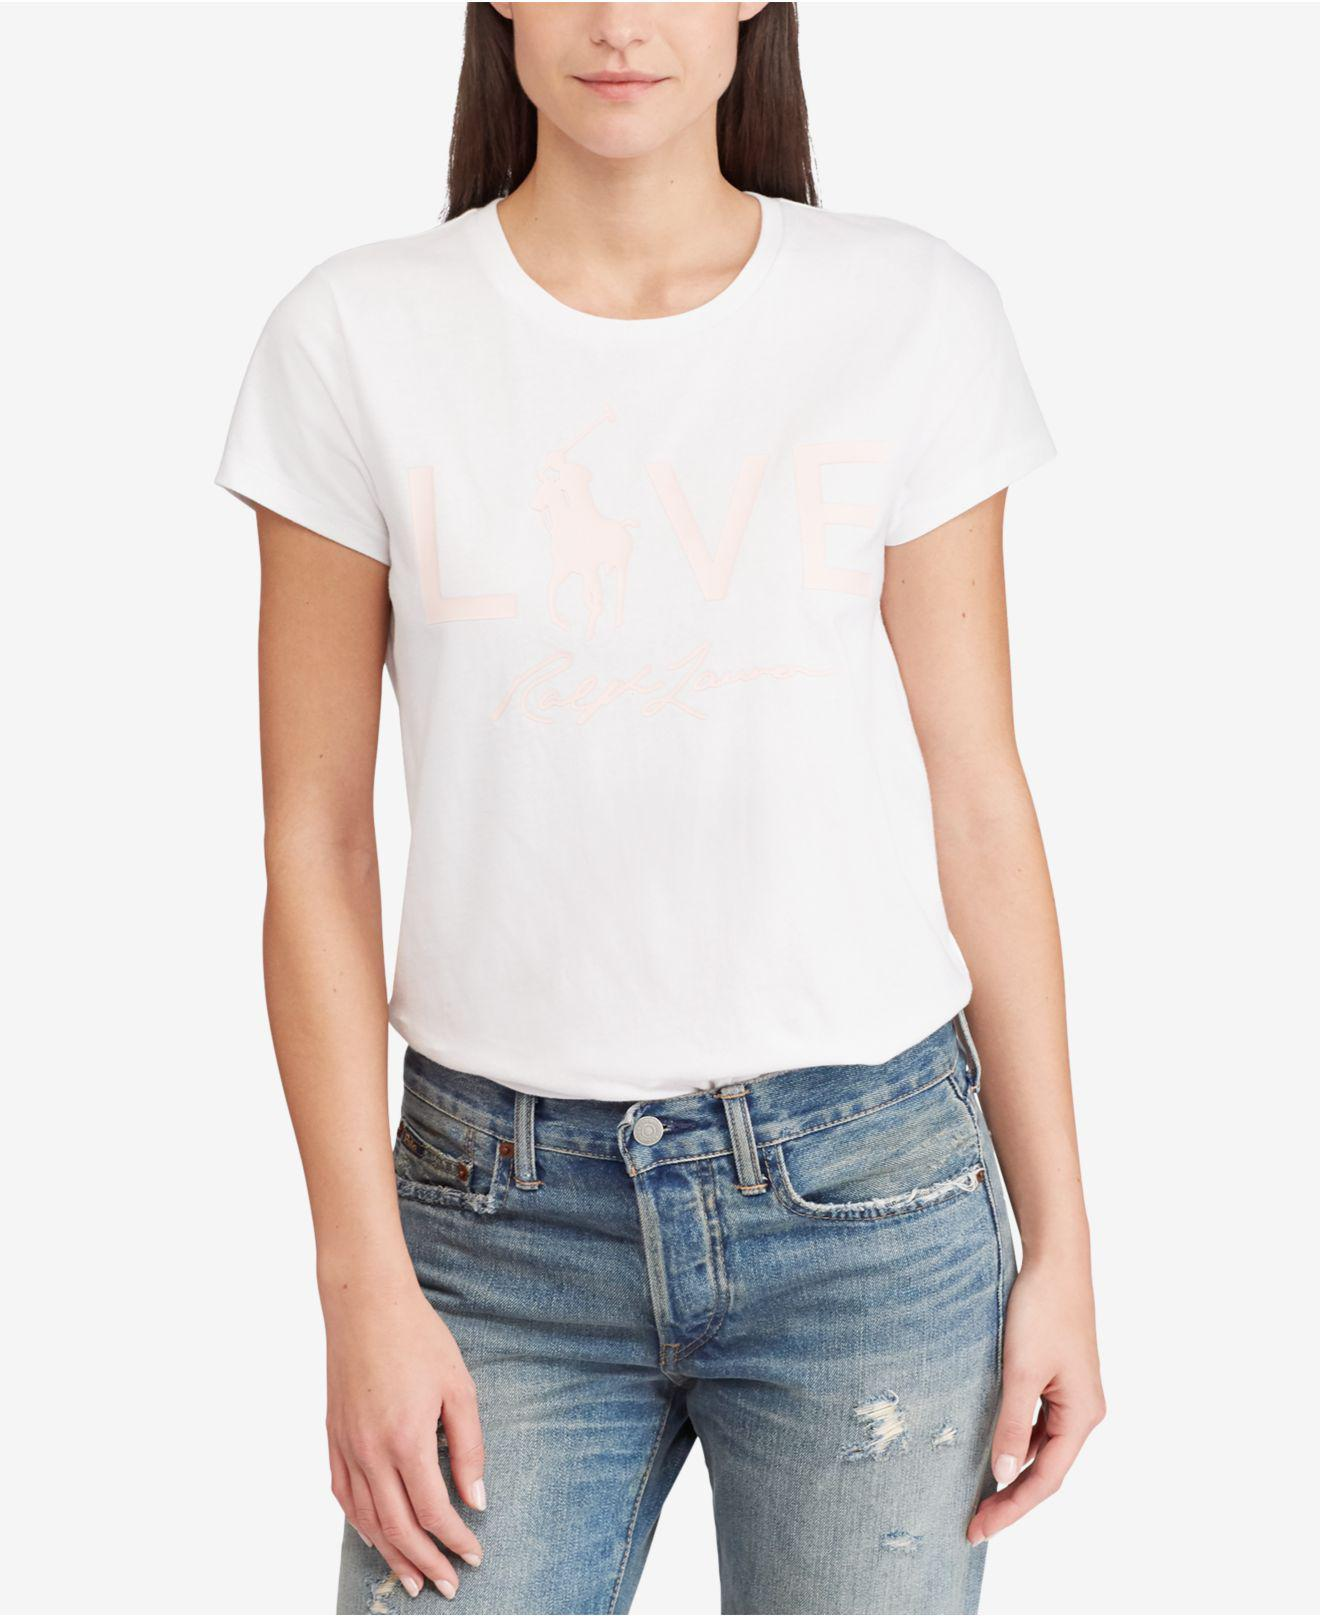 c463d7af9 Lyst - Polo Ralph Lauren Pink Pony Graphic Cotton T-shirt in White ...